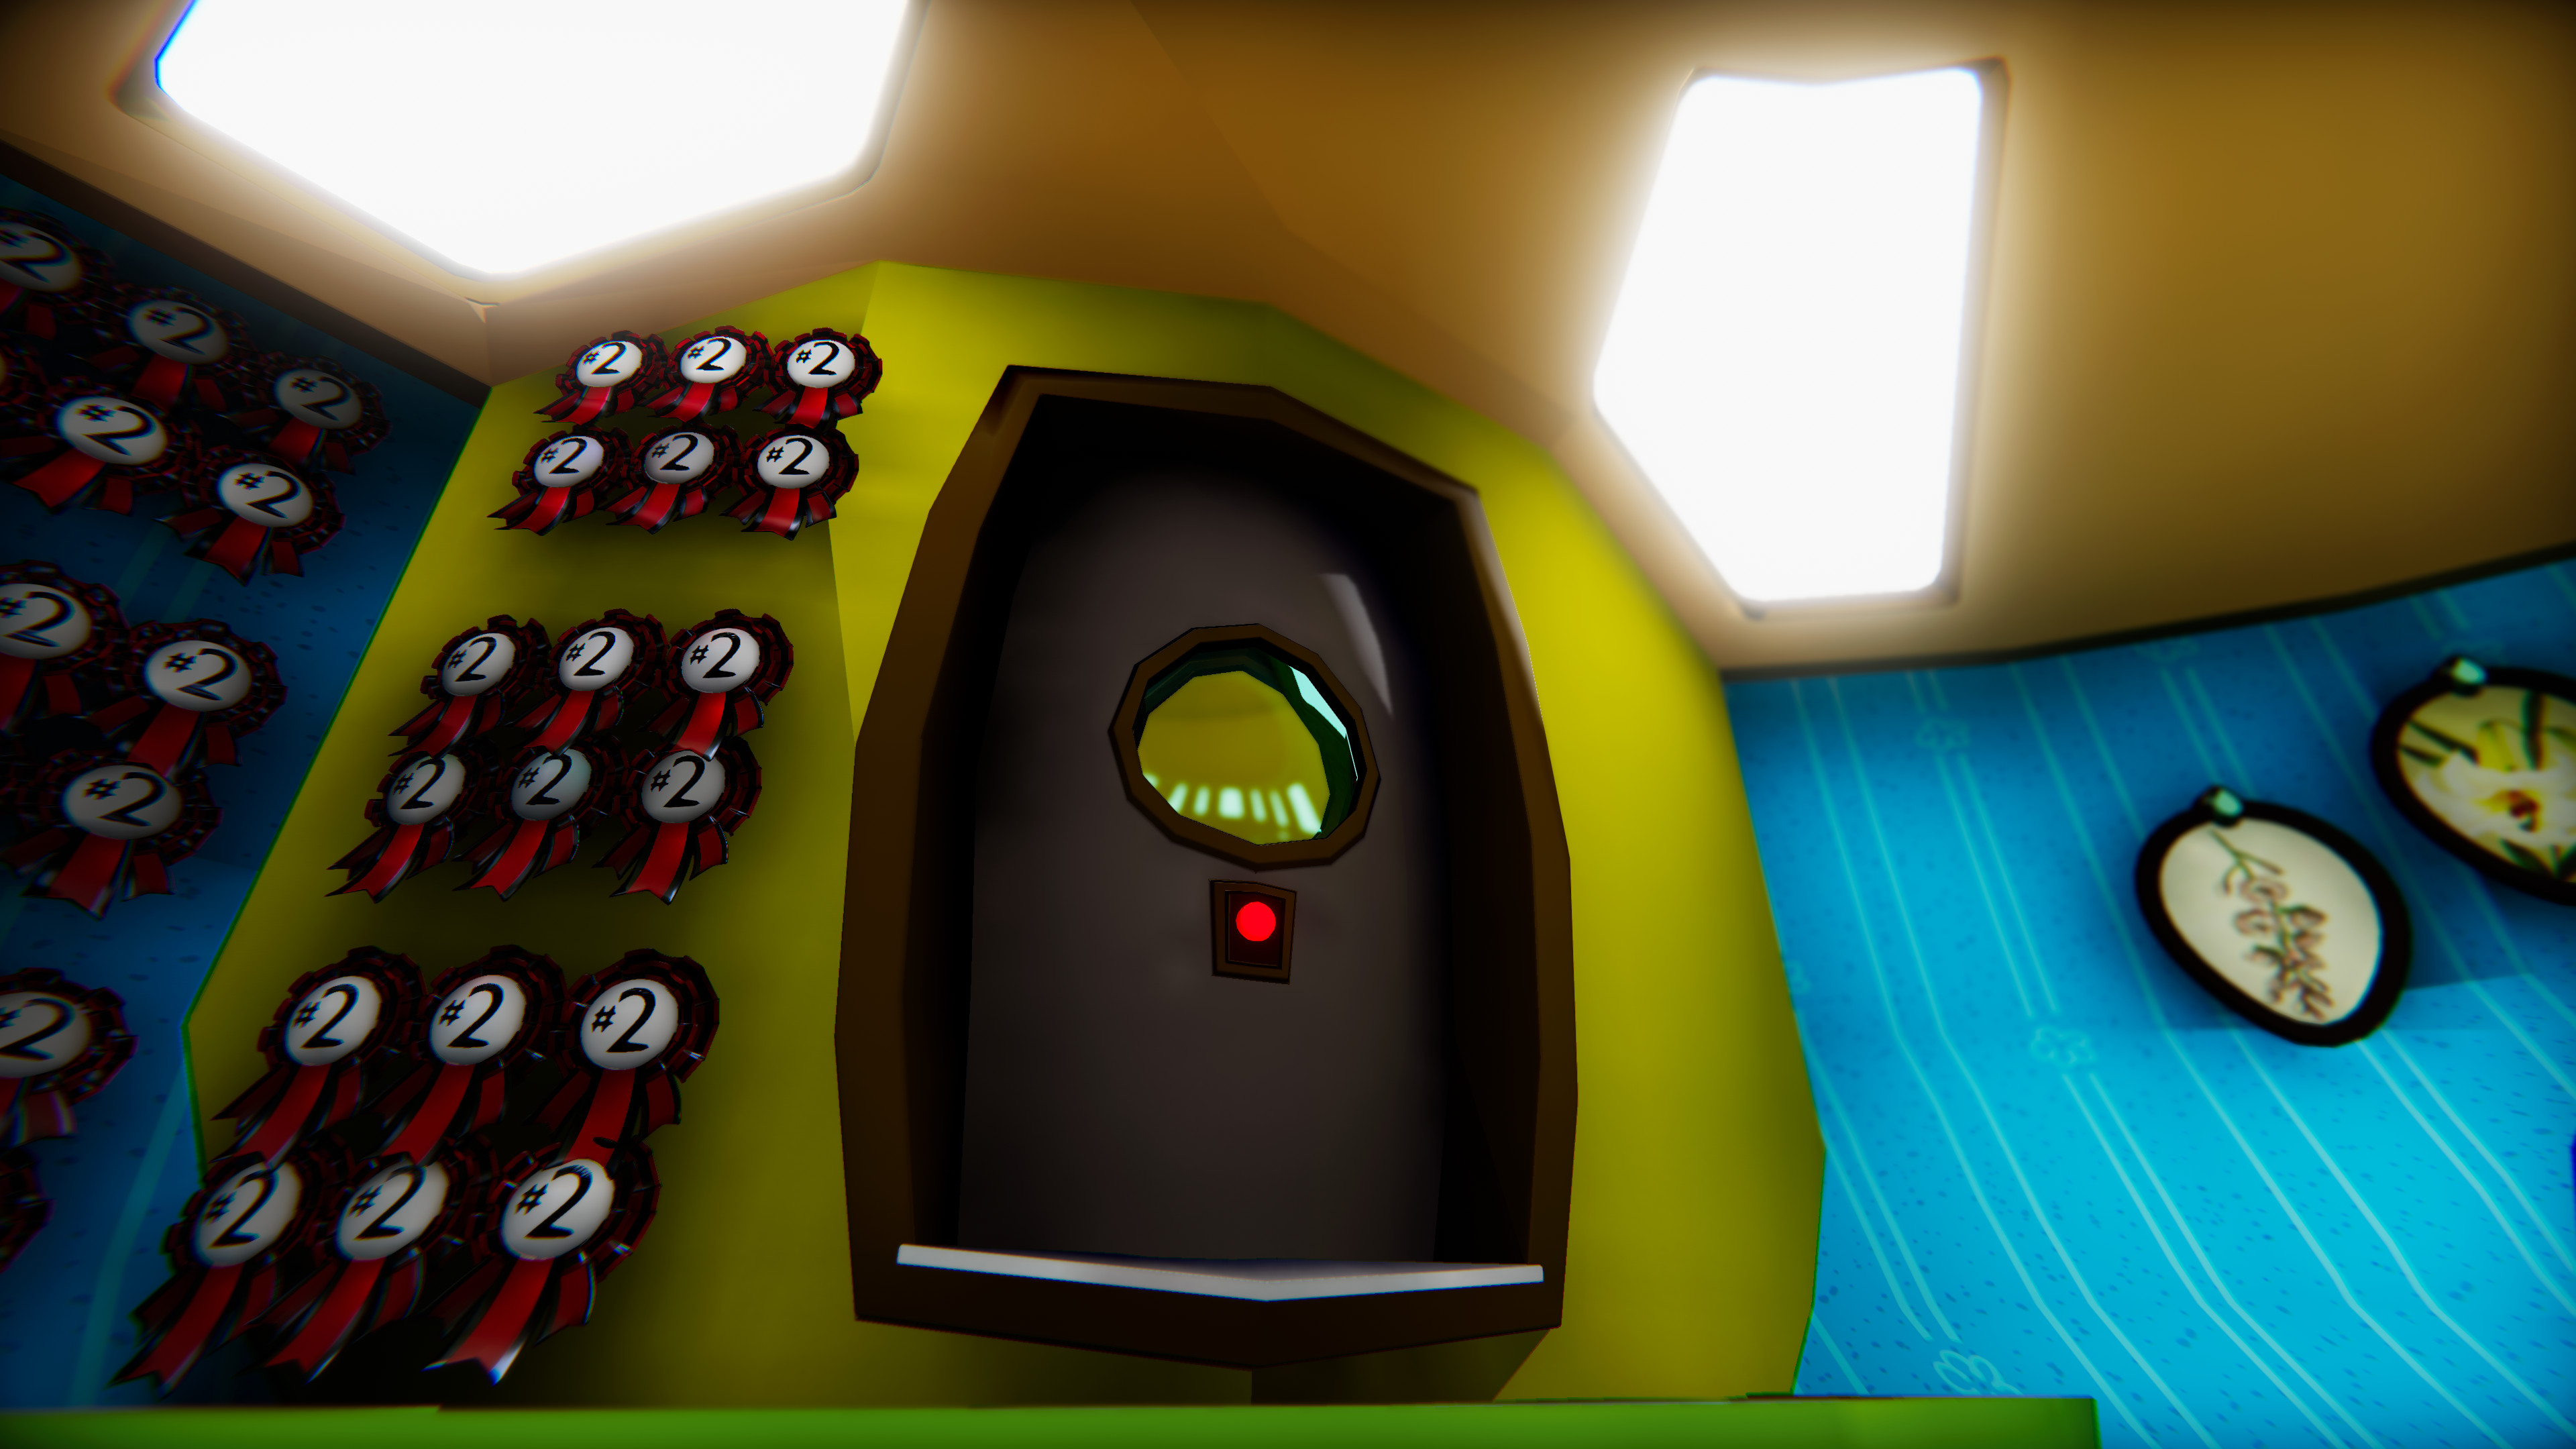 Though the airlock is rarely shown, I designed it with daily use in mind. It functions as the main entryway, by looking like the natural exit it creates a flow to the environment, and makes the room more relatable to players.